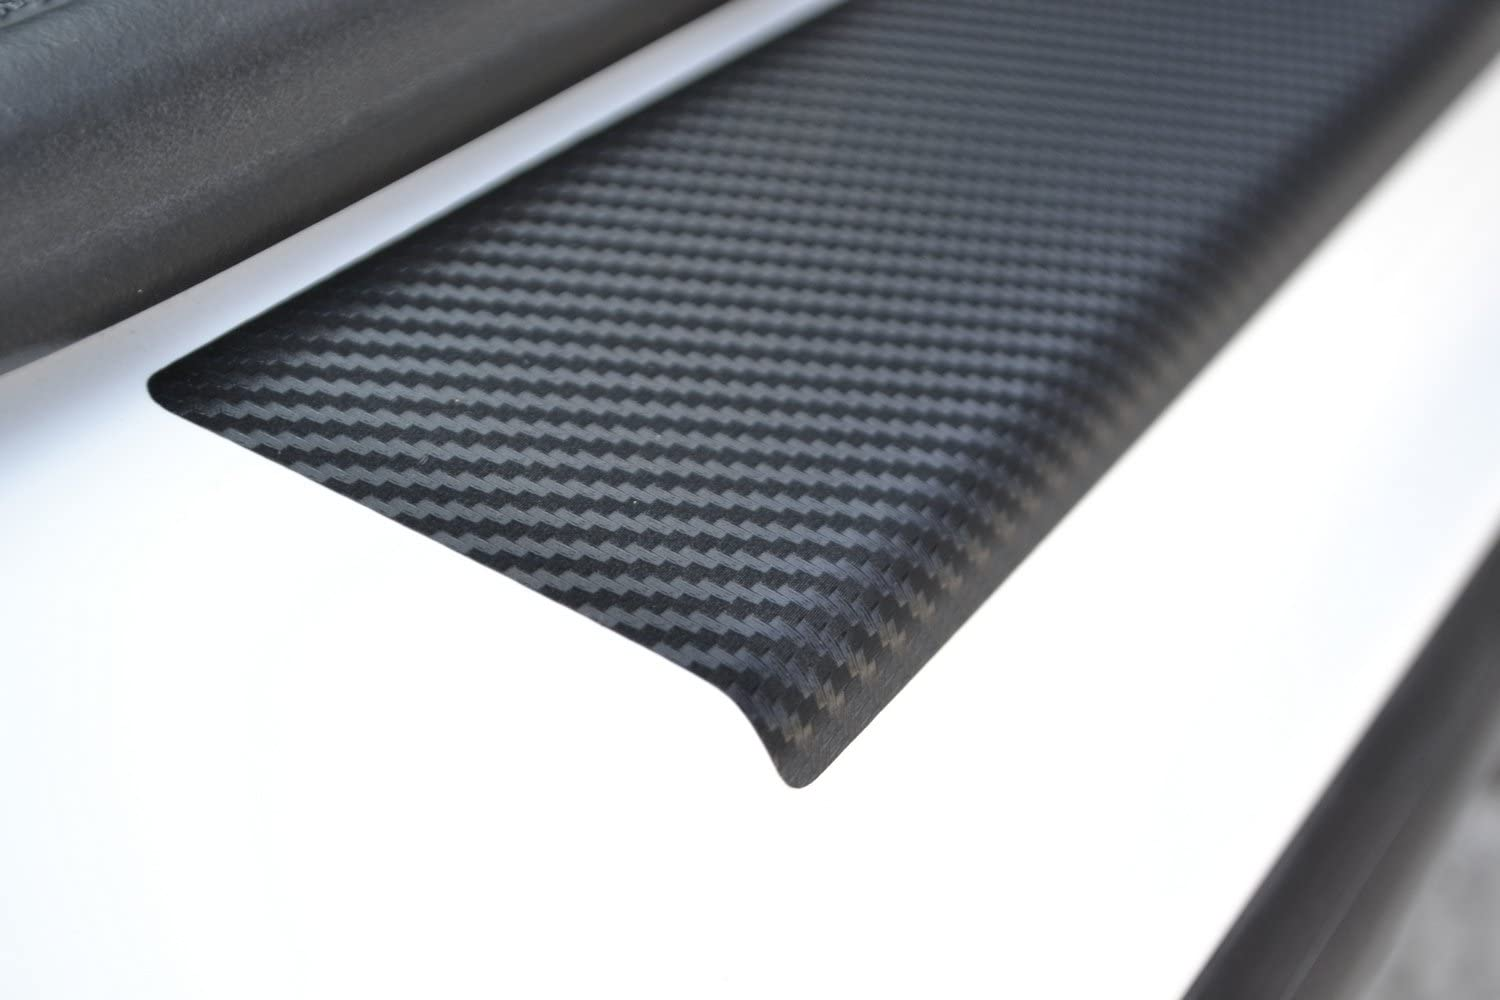 Door Sill Protector Film fit Subaru Forester 2013- Black Carbon Fiber Texture Decals Vinyl Wrap Scuff Protection Entry Guard 4 pcs Kit